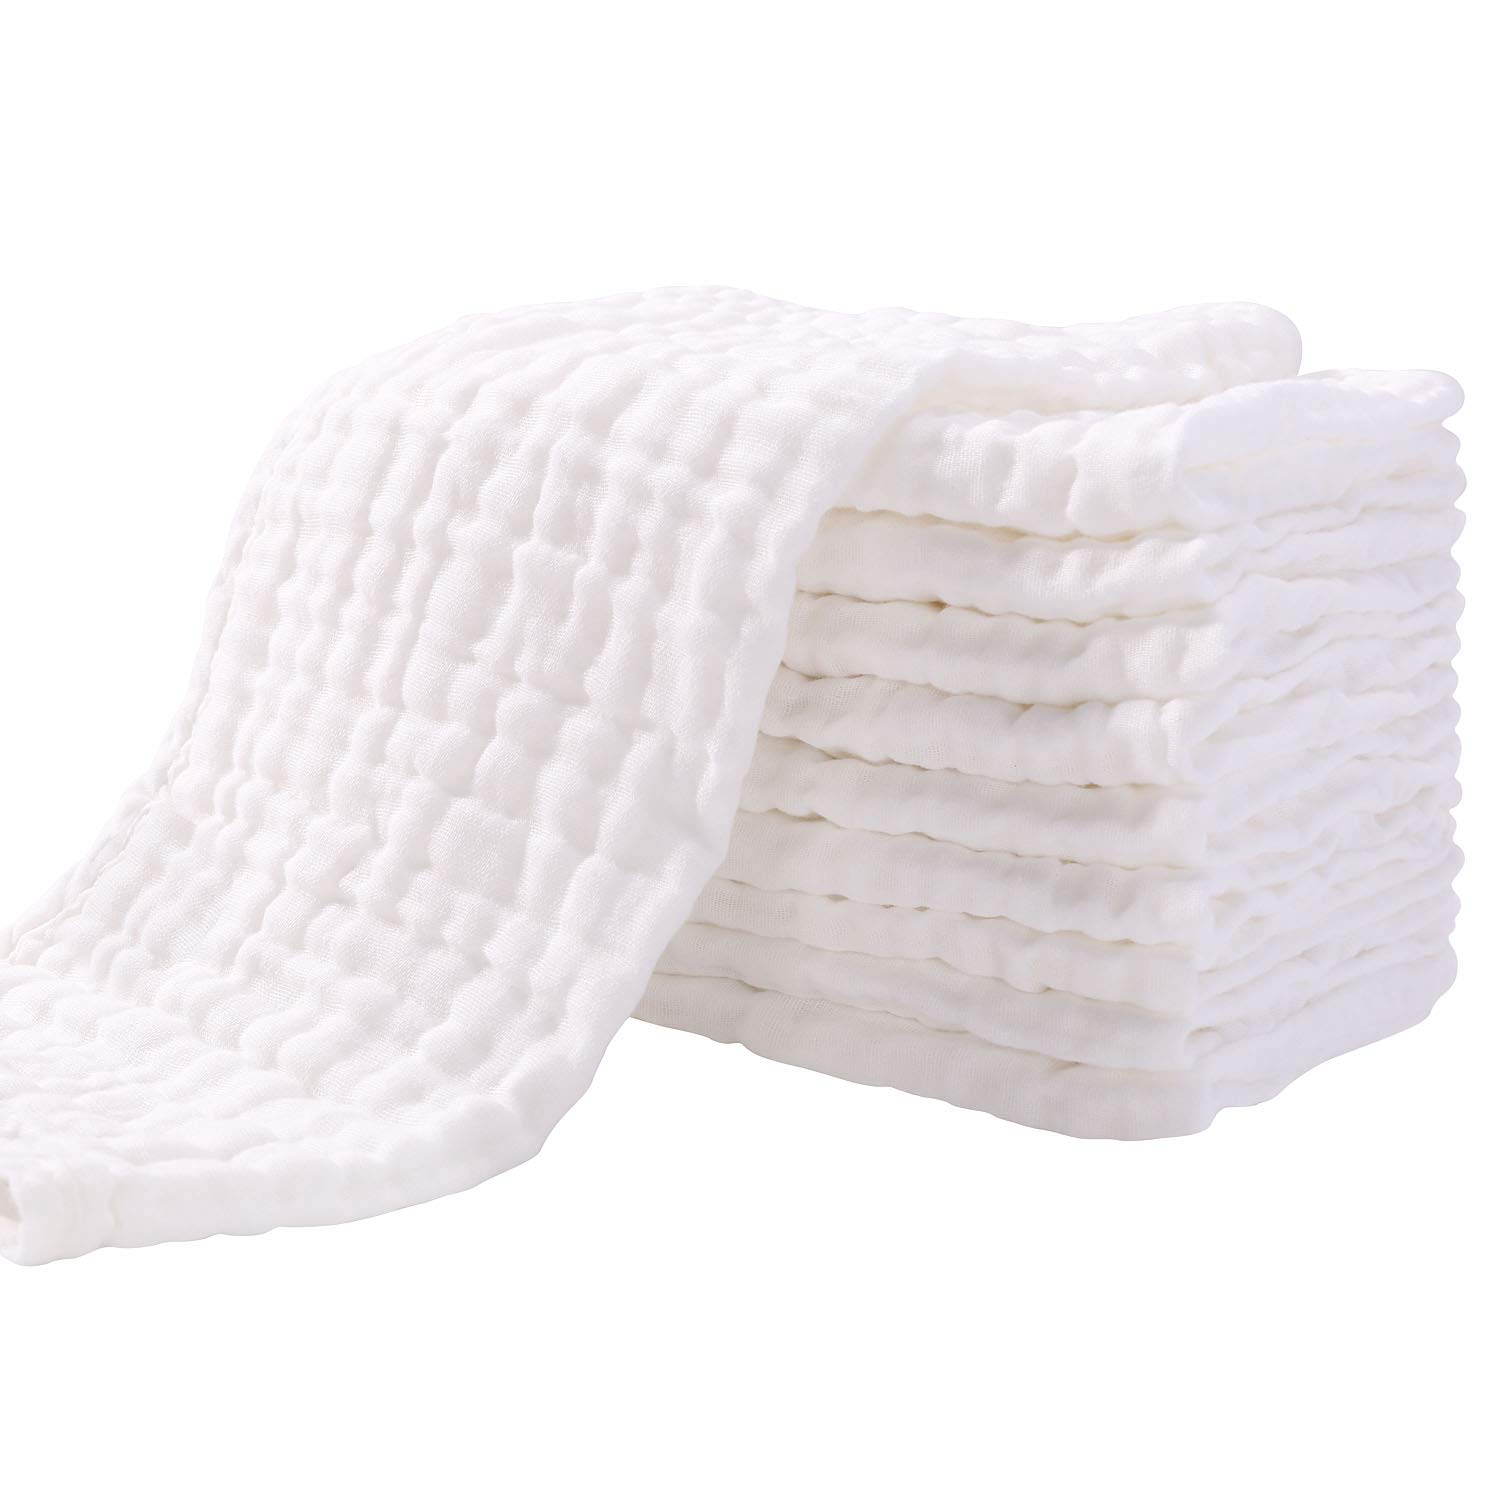 Soft muslin facial cloths